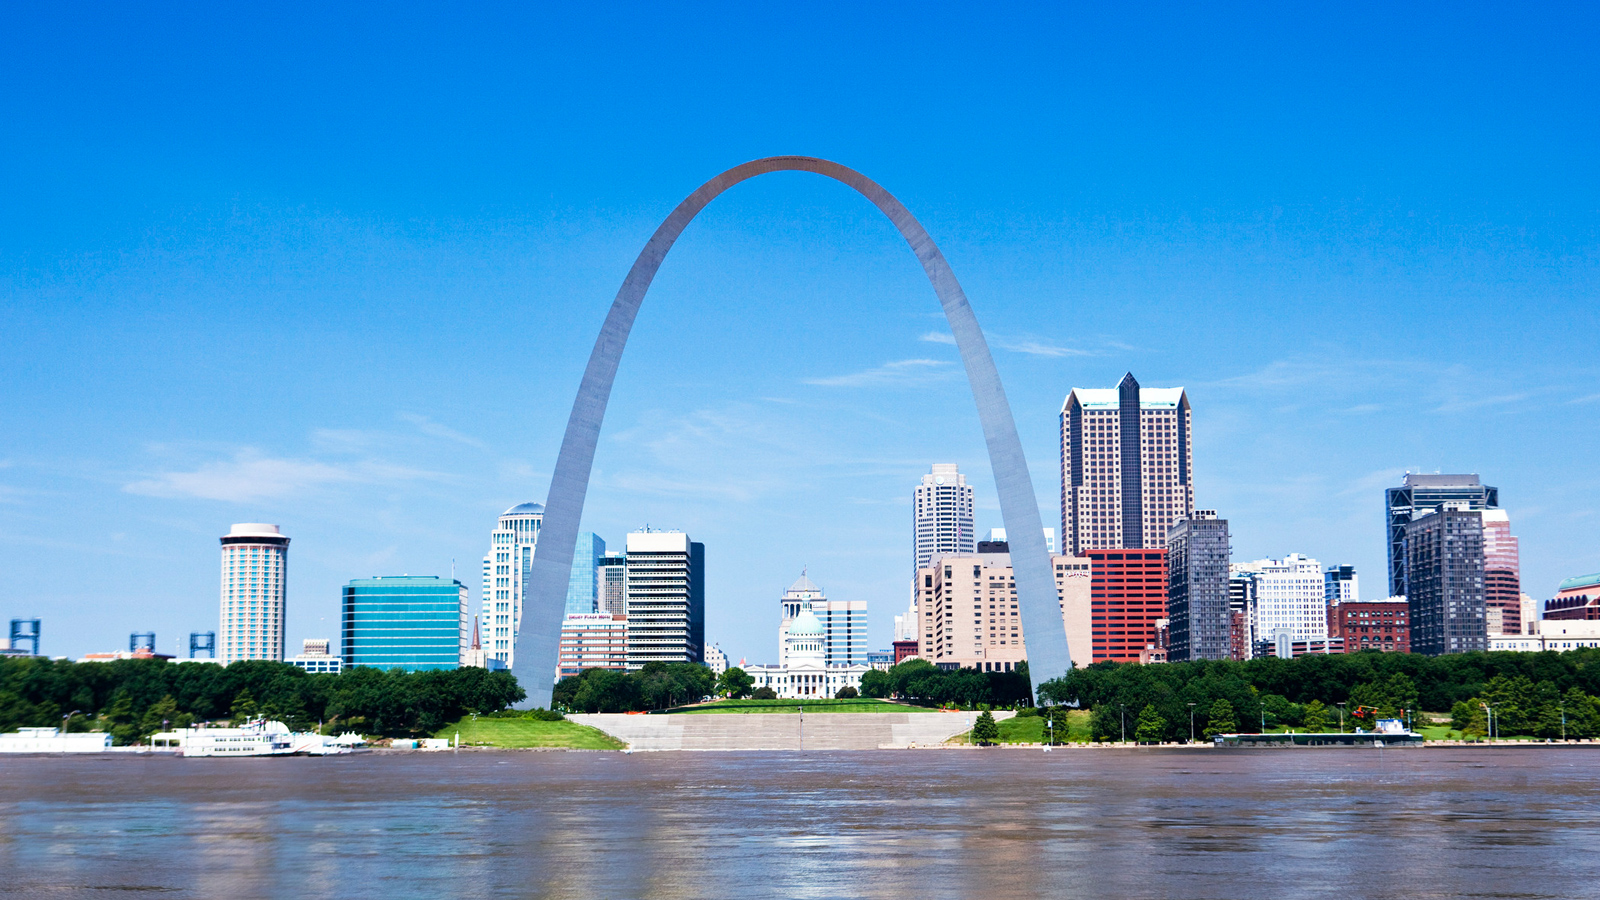 Hotels In St Louis By The Arch